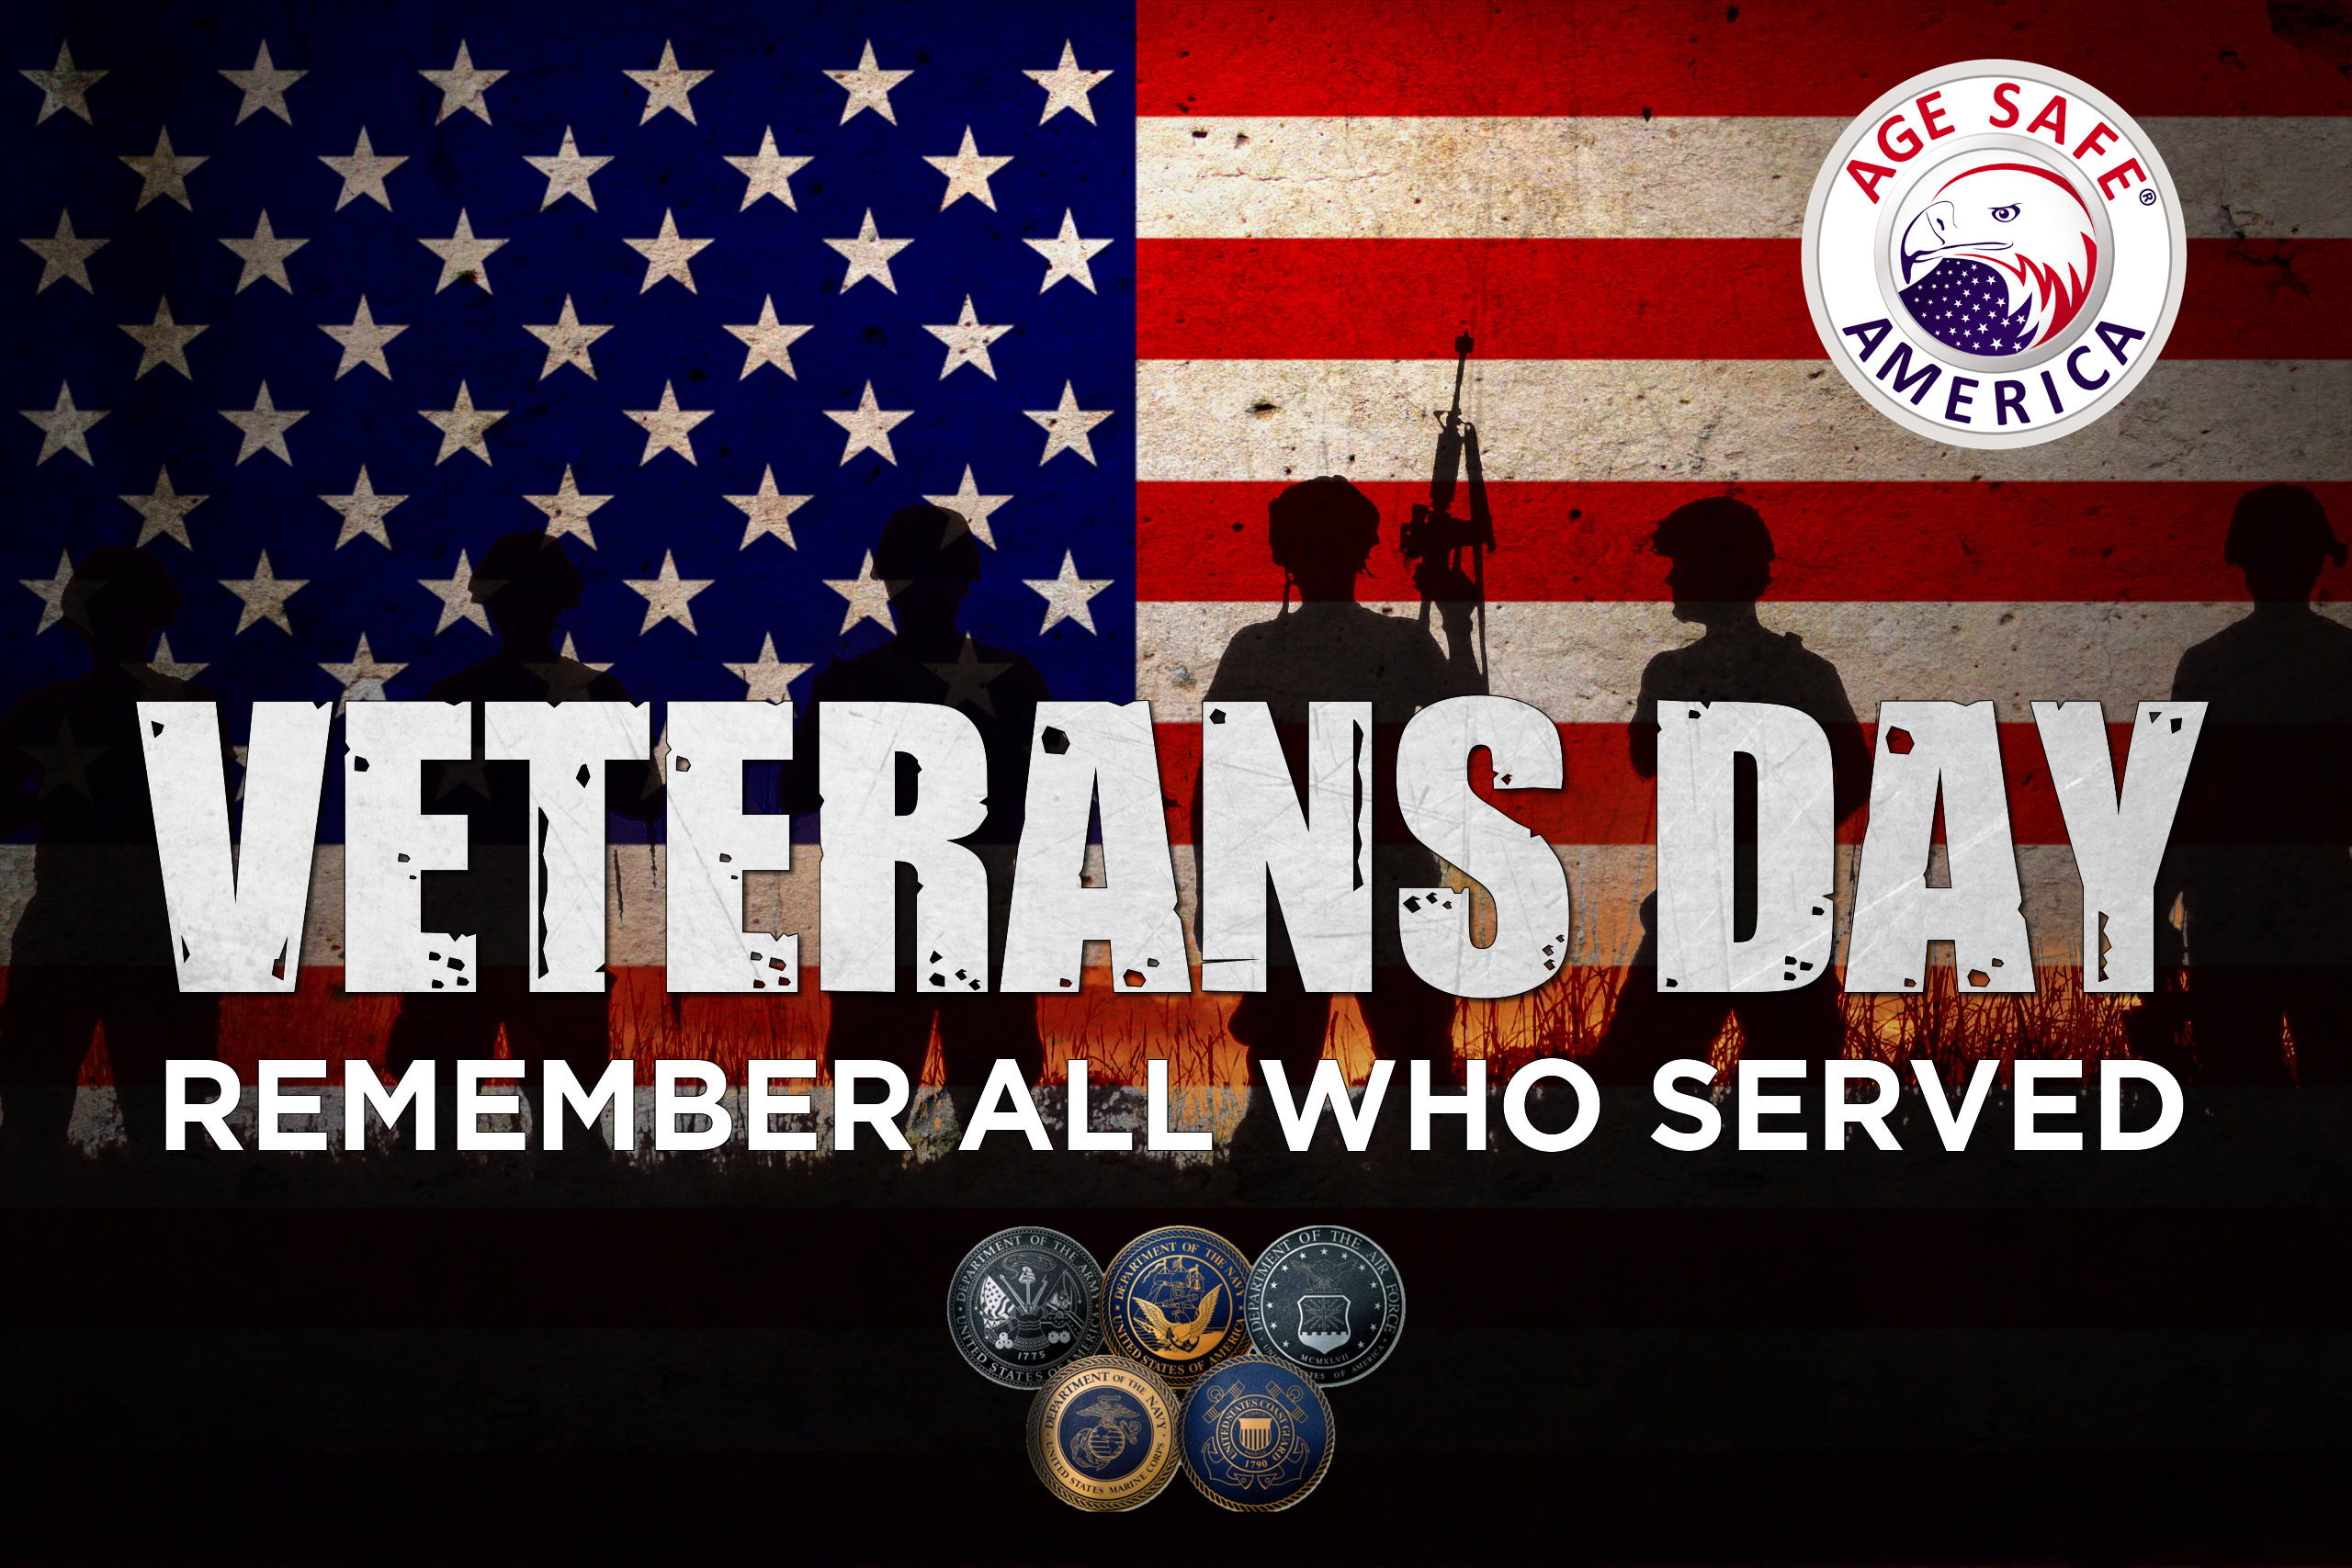 We Remember All Who Served